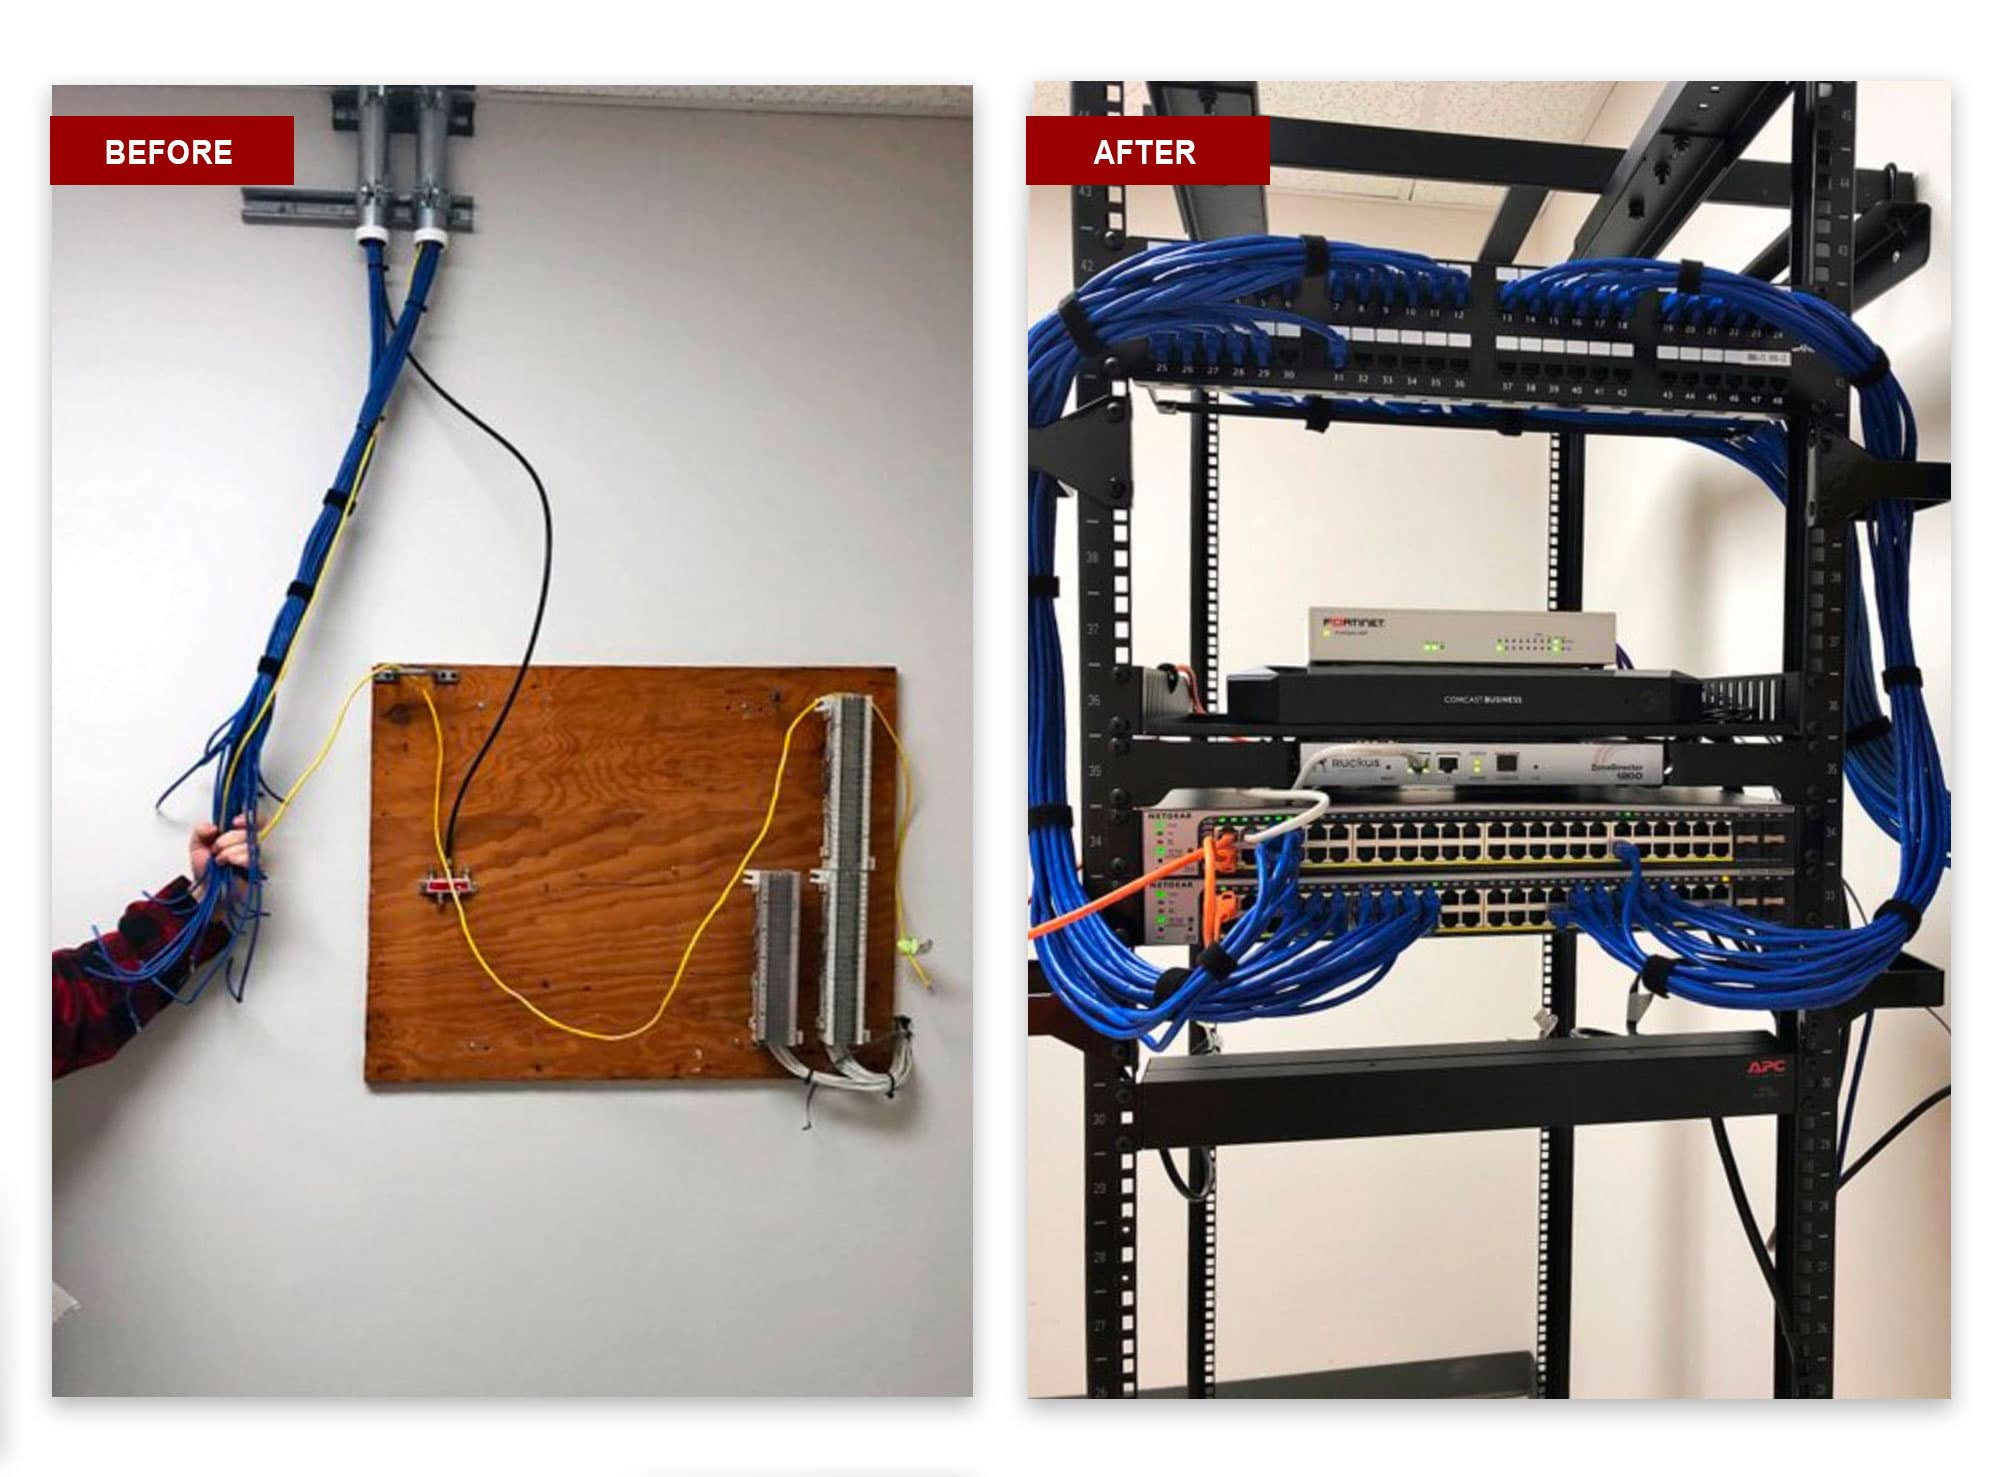 expert network cable installation